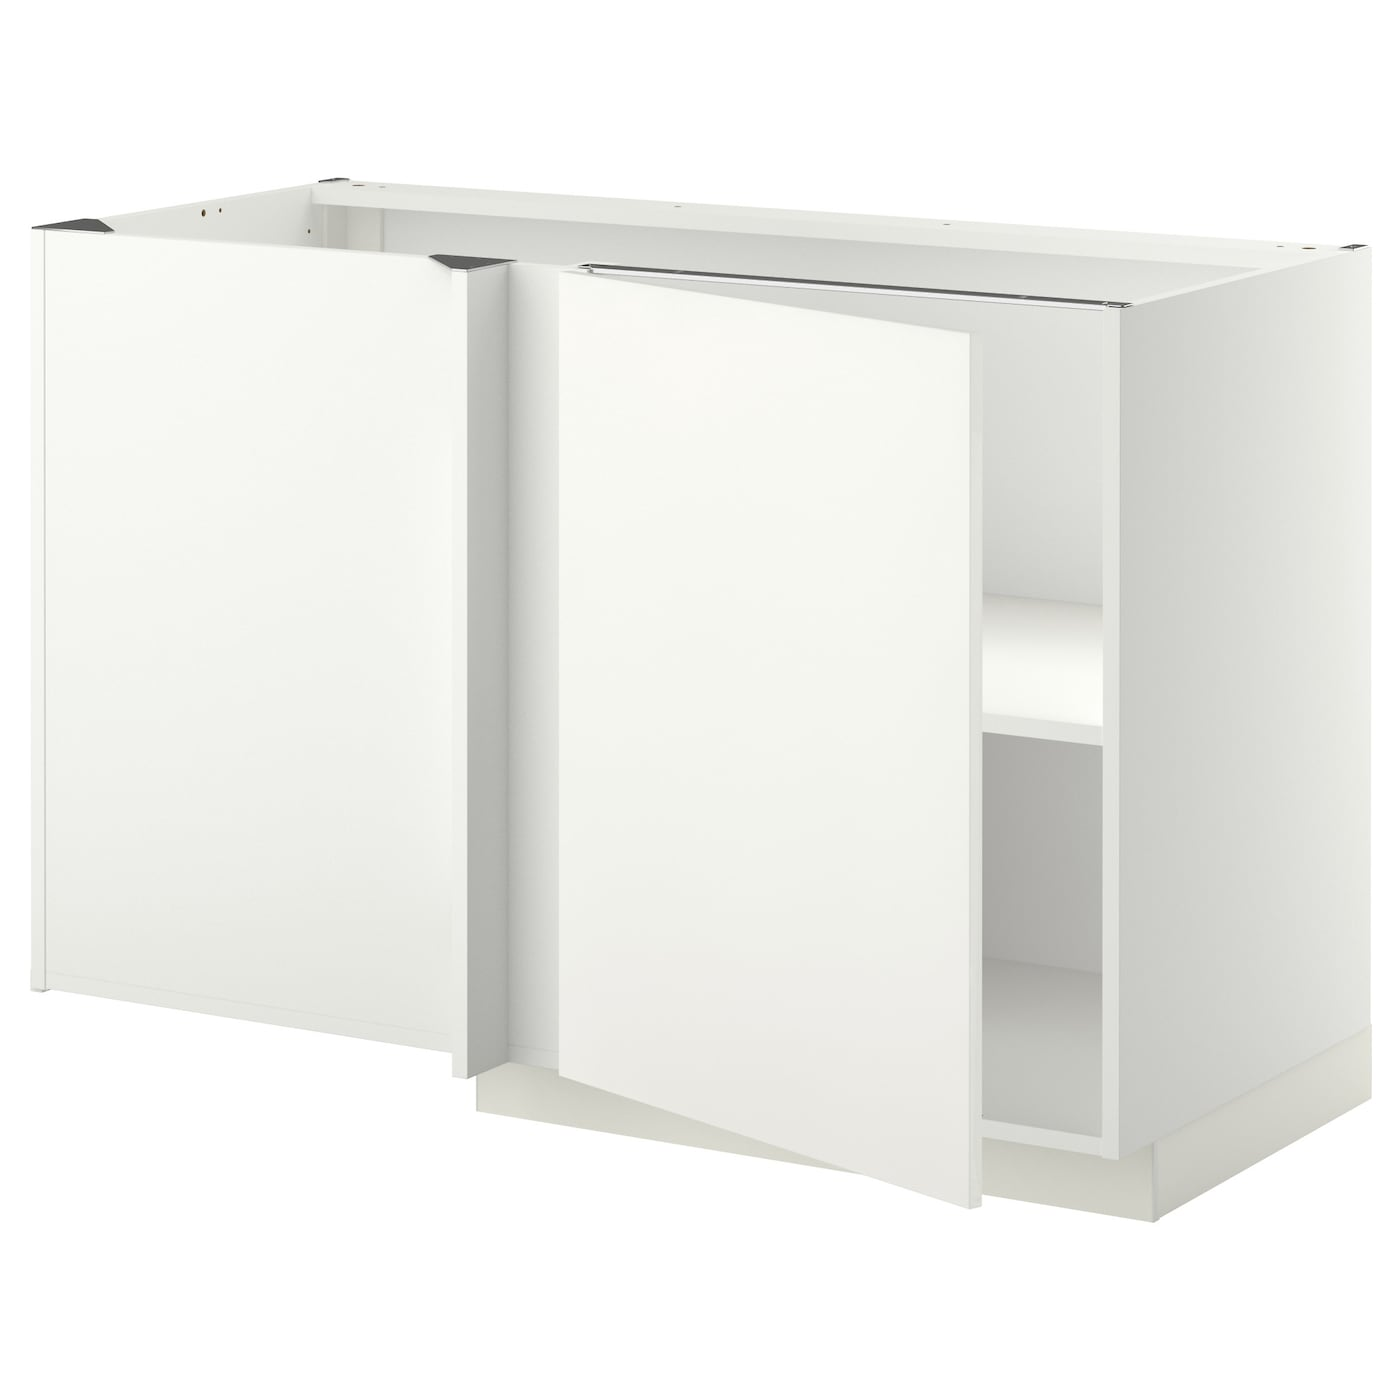 metod corner base cabinet with shelf white h ggeby white 128 x 68 cm ikea. Black Bedroom Furniture Sets. Home Design Ideas